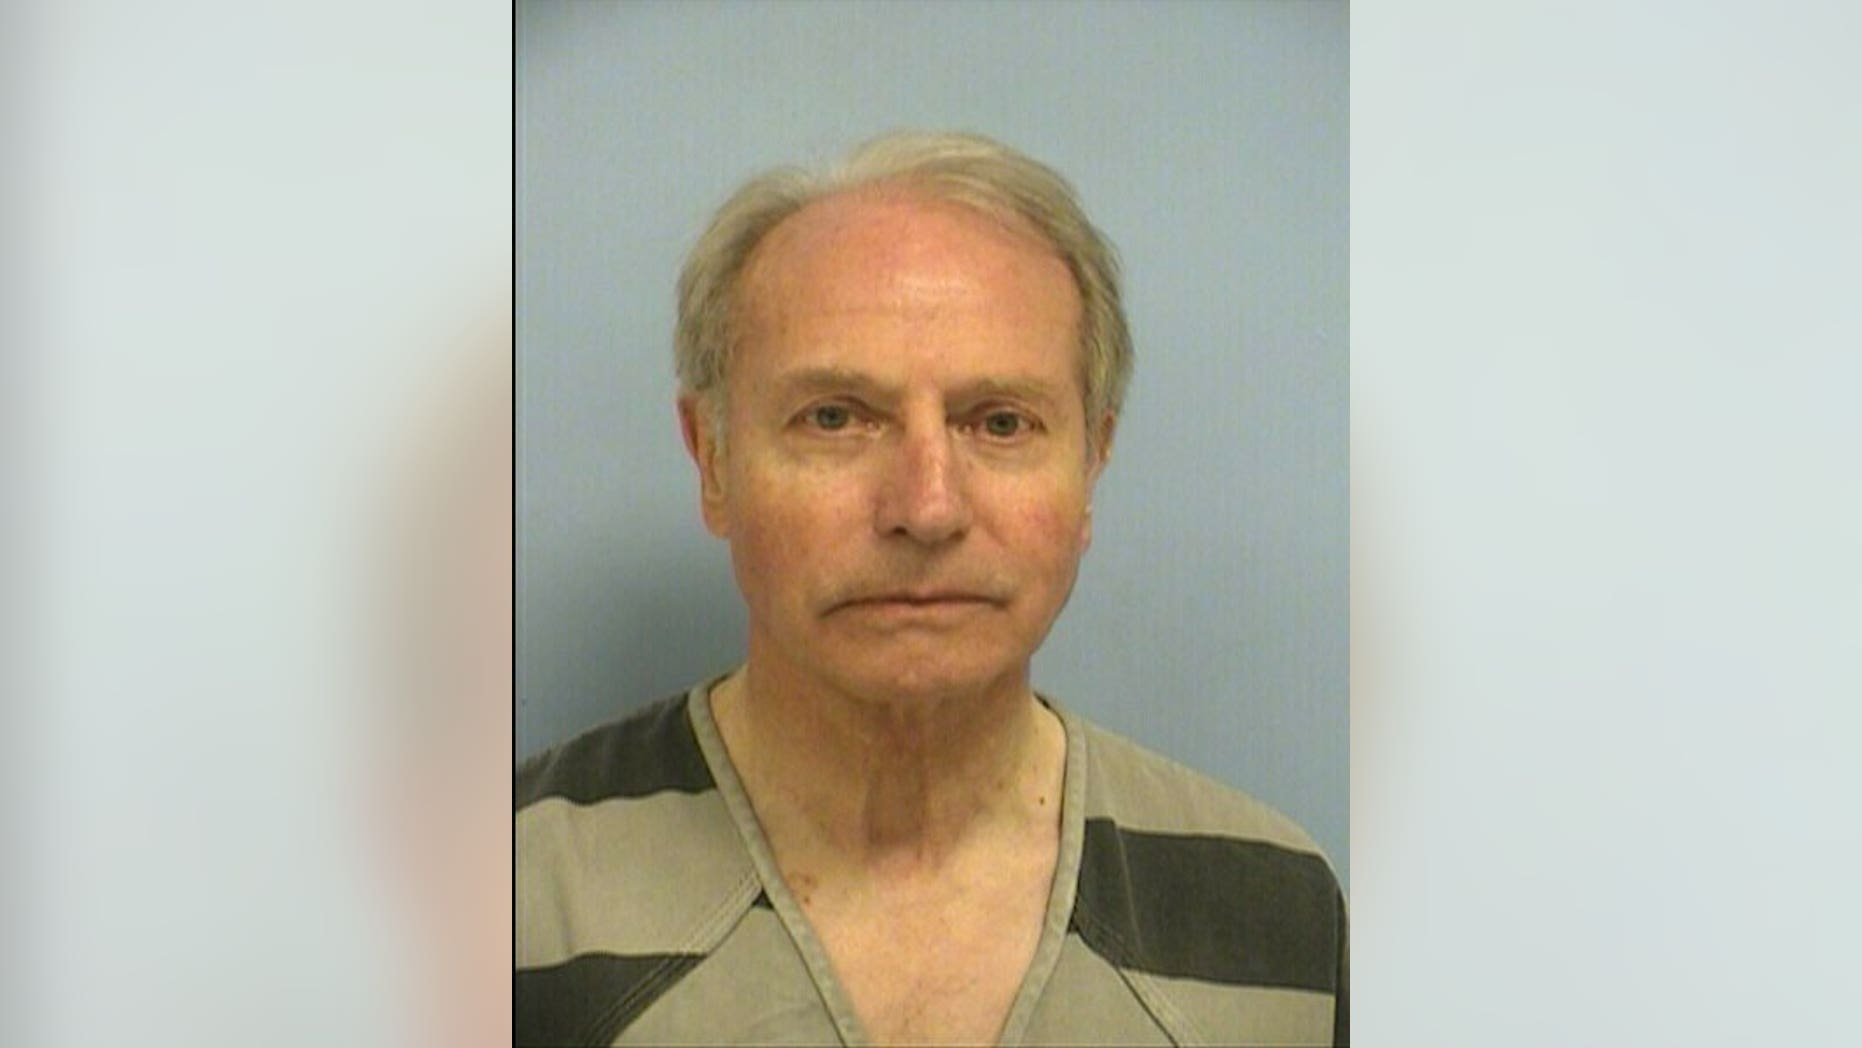 This photo provided by the Austin Police Department shows Gerold Langsch. The Rev. Langsch, of Austin, was arrested Thursday, March 14, 2019, and charged with assault by contact stemming from the October encounter. The 75-year-old priest is free on $15,000 bond. If convicted, he could be sentenced to a year in jail and fined up to $4,000.